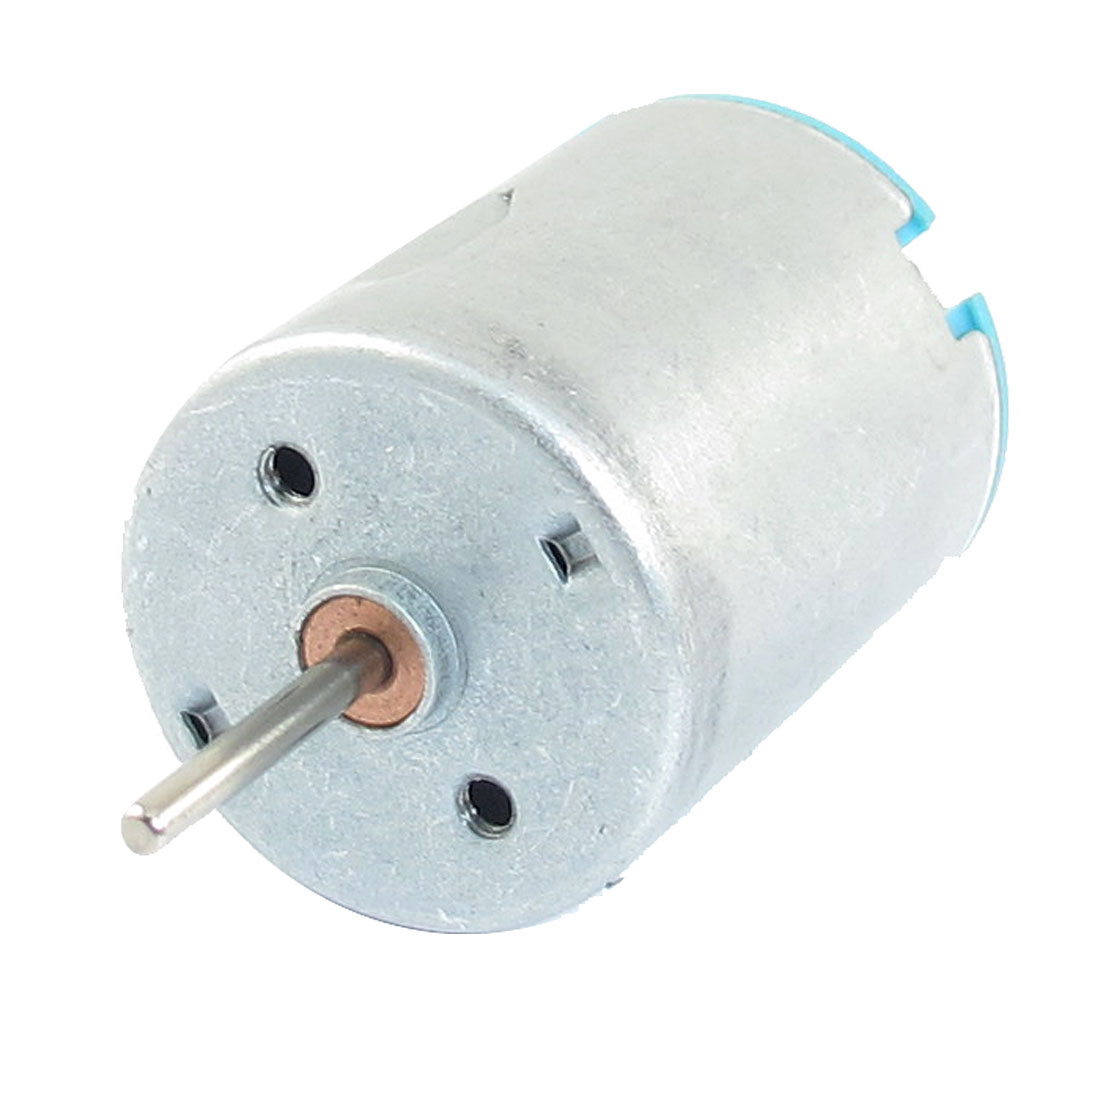 DC 24V 0.38A 6400RPM Rotary Speed 2 Pin Electric Magnetic Mini Motor